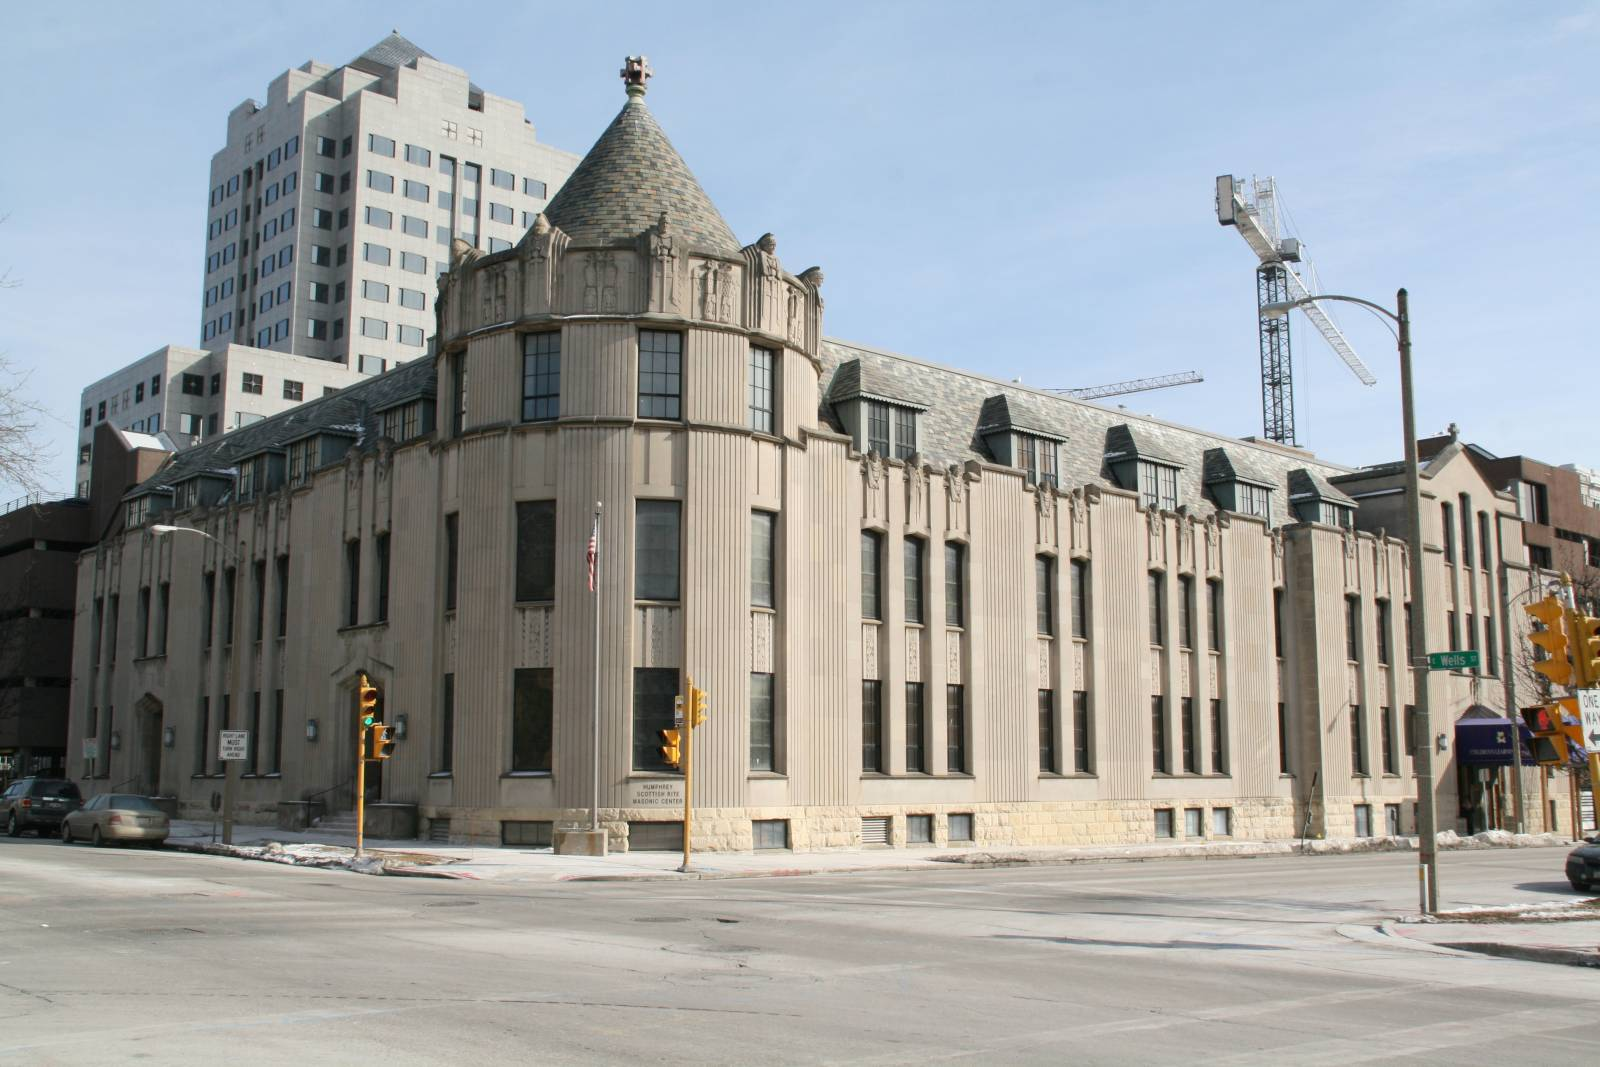 Historic Scottish Rite Masonic Temple Sold